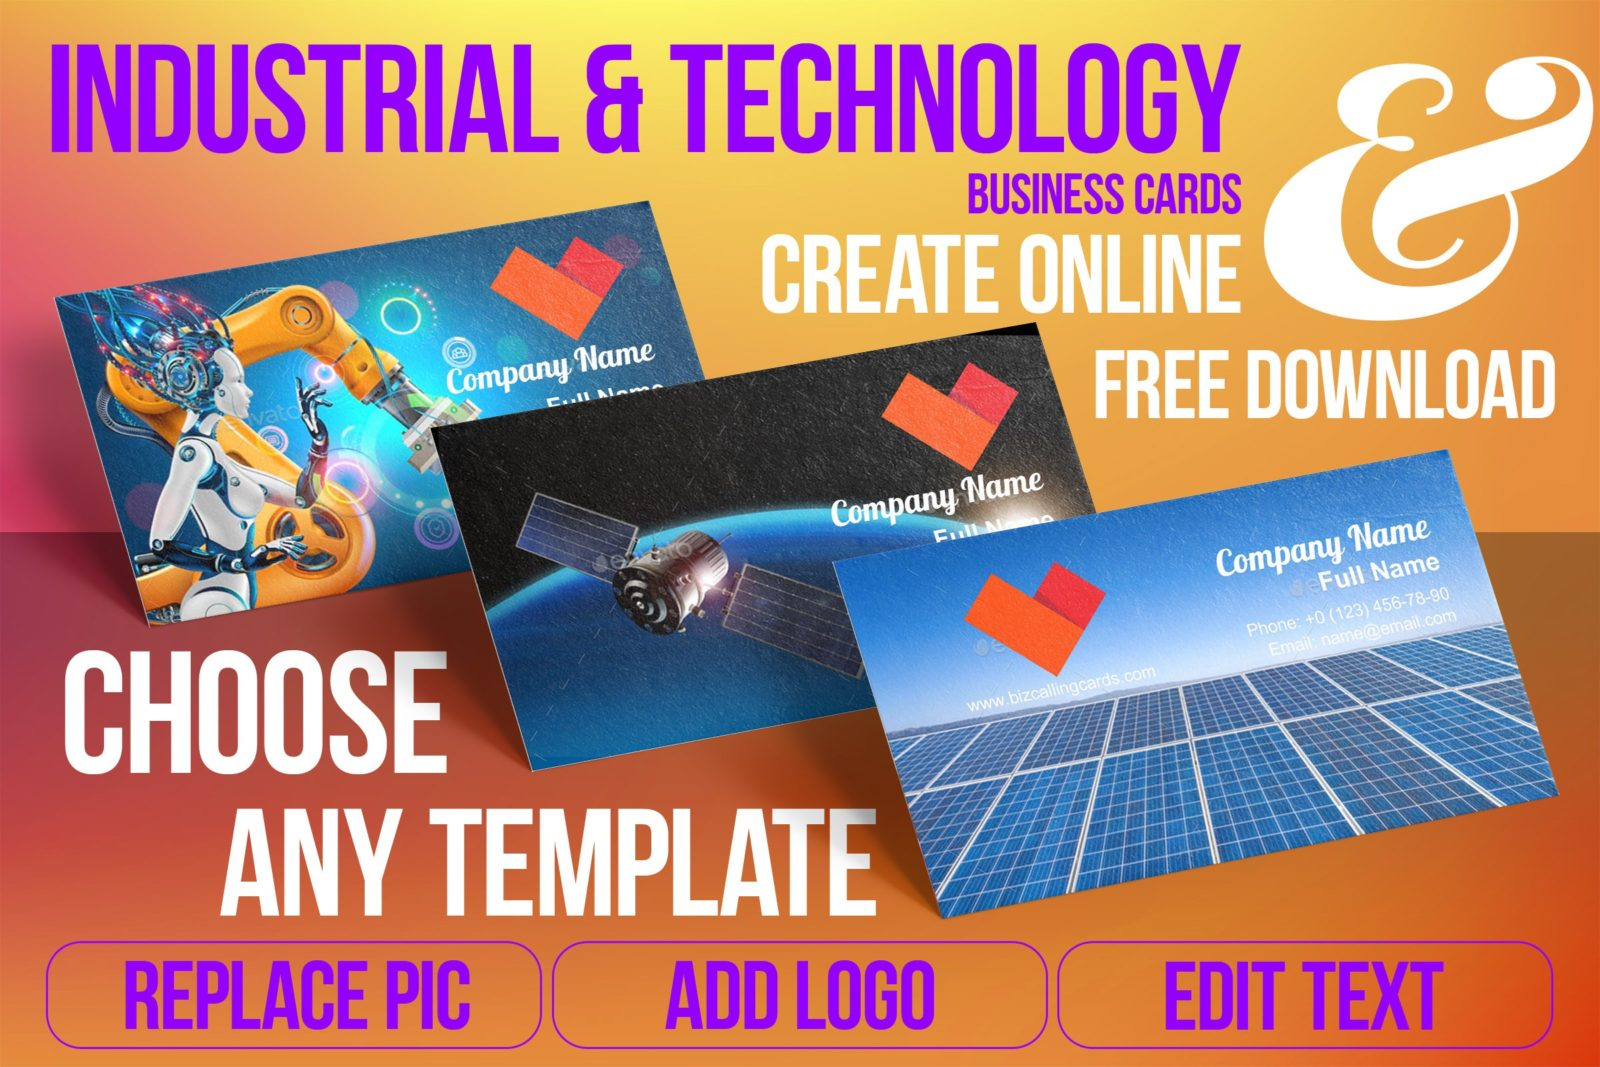 Business Card Templates For Industrial & Technology Free Download